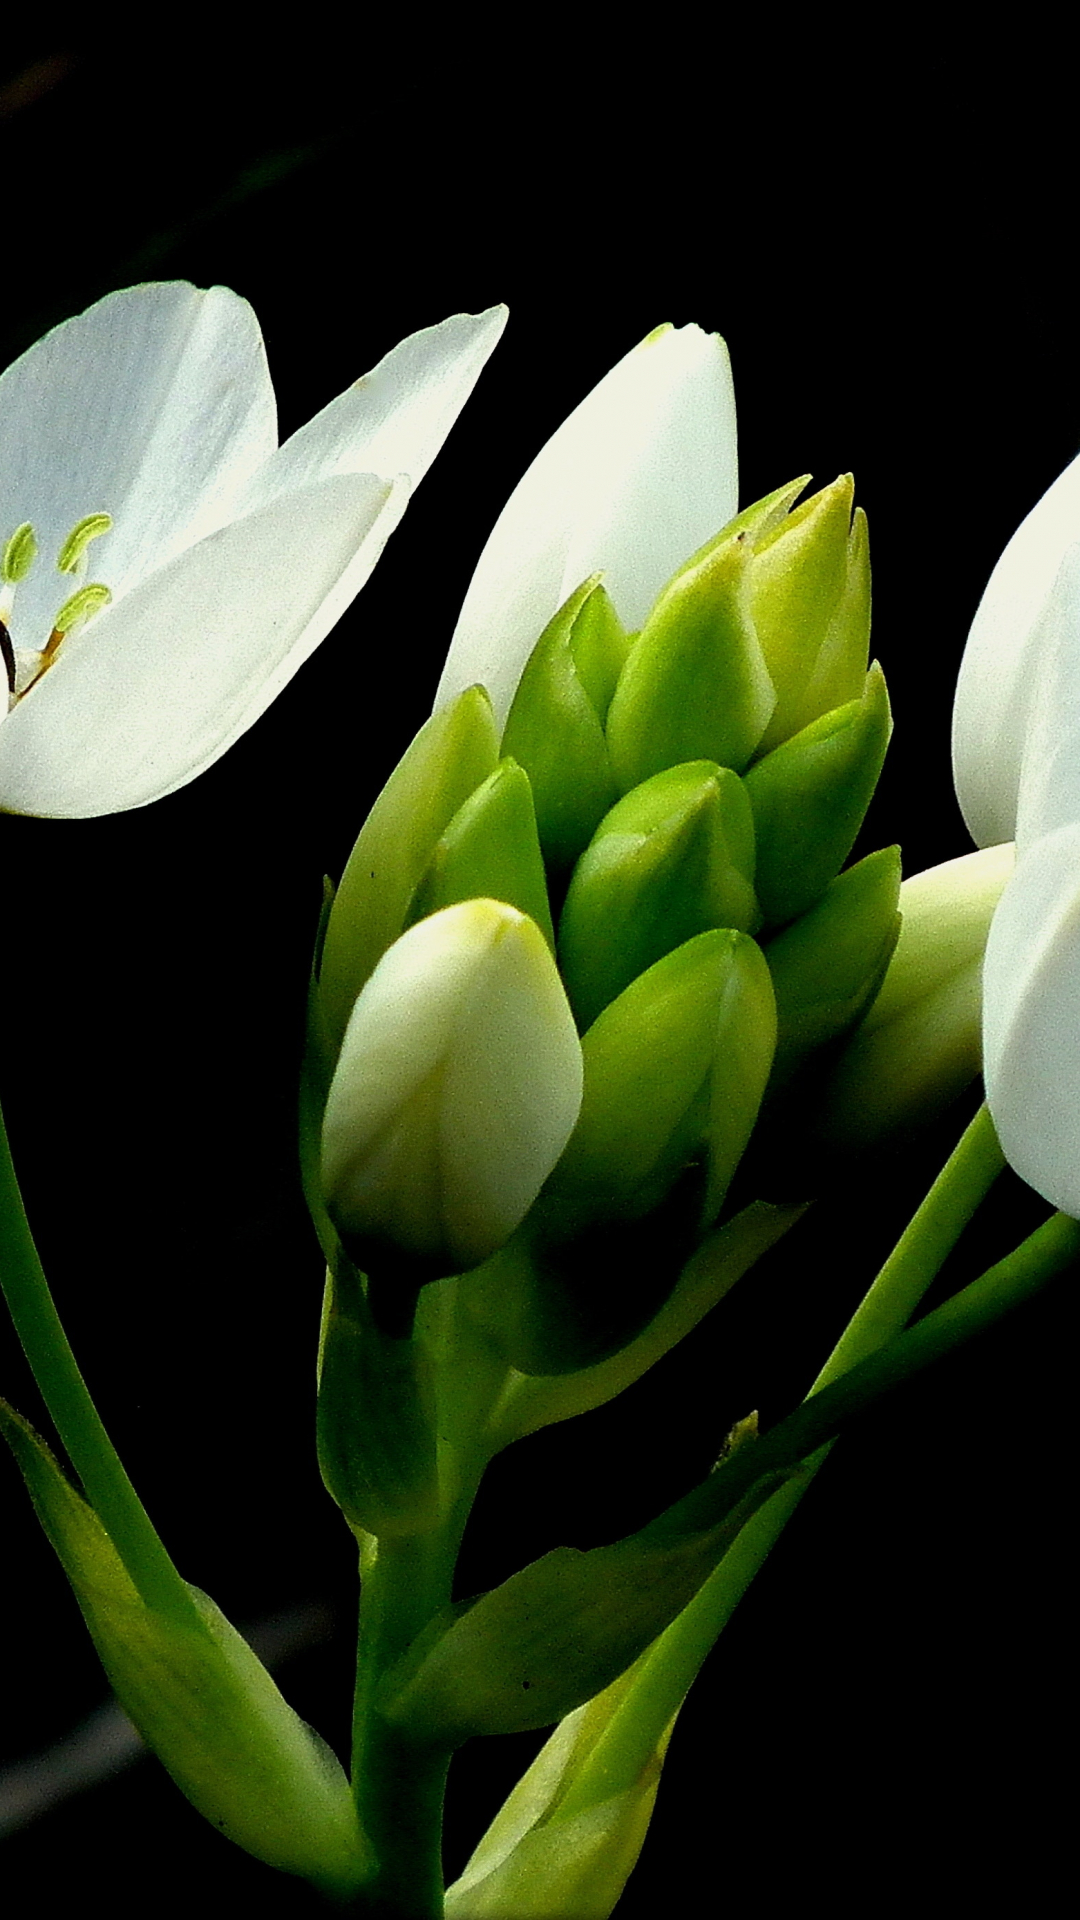 Ornithogalum iPhone Wallpaper